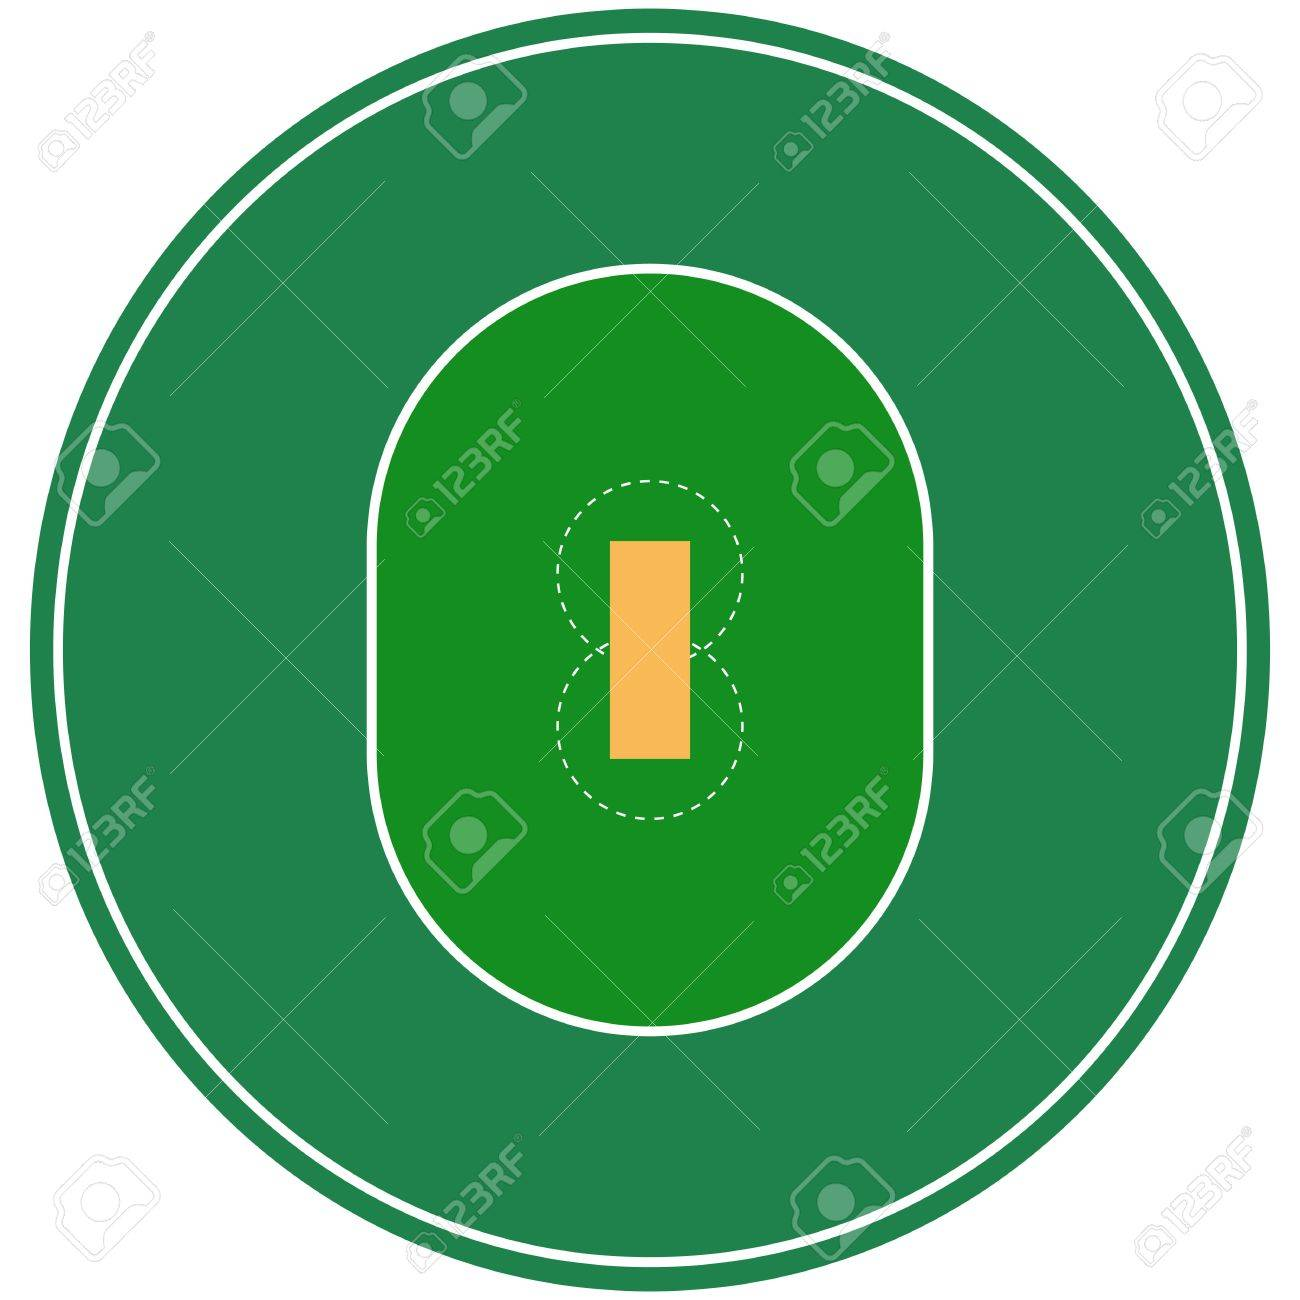 Flat Green Cricket Ground Top View Cricket Field With Line Template